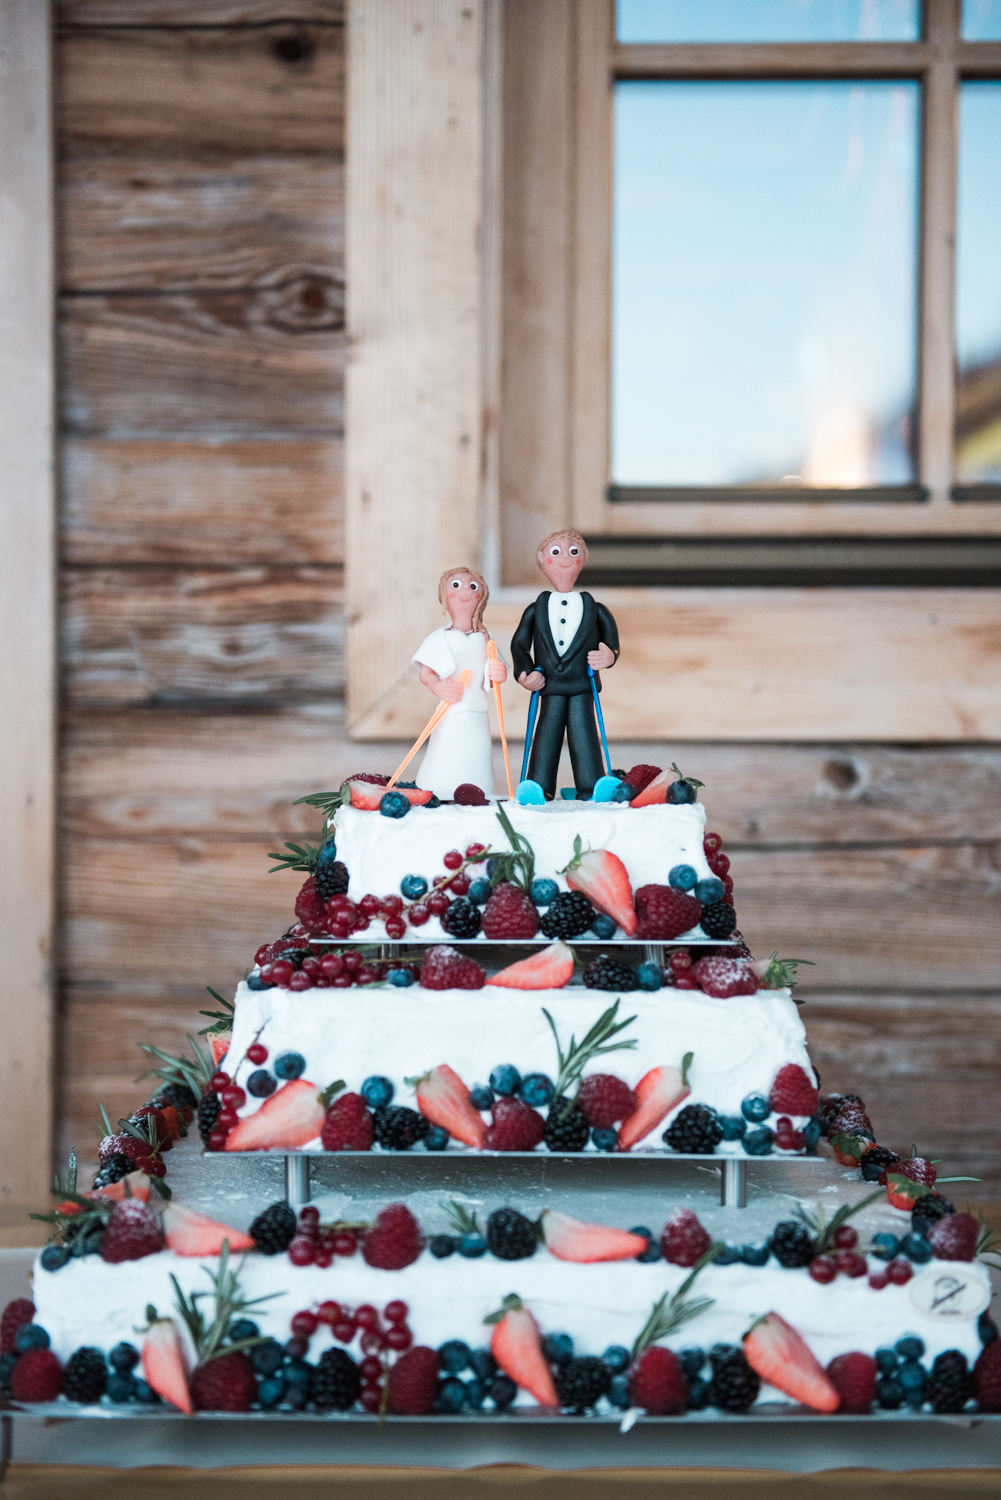 A ski themed wedding cake at a winter wedding in Austria